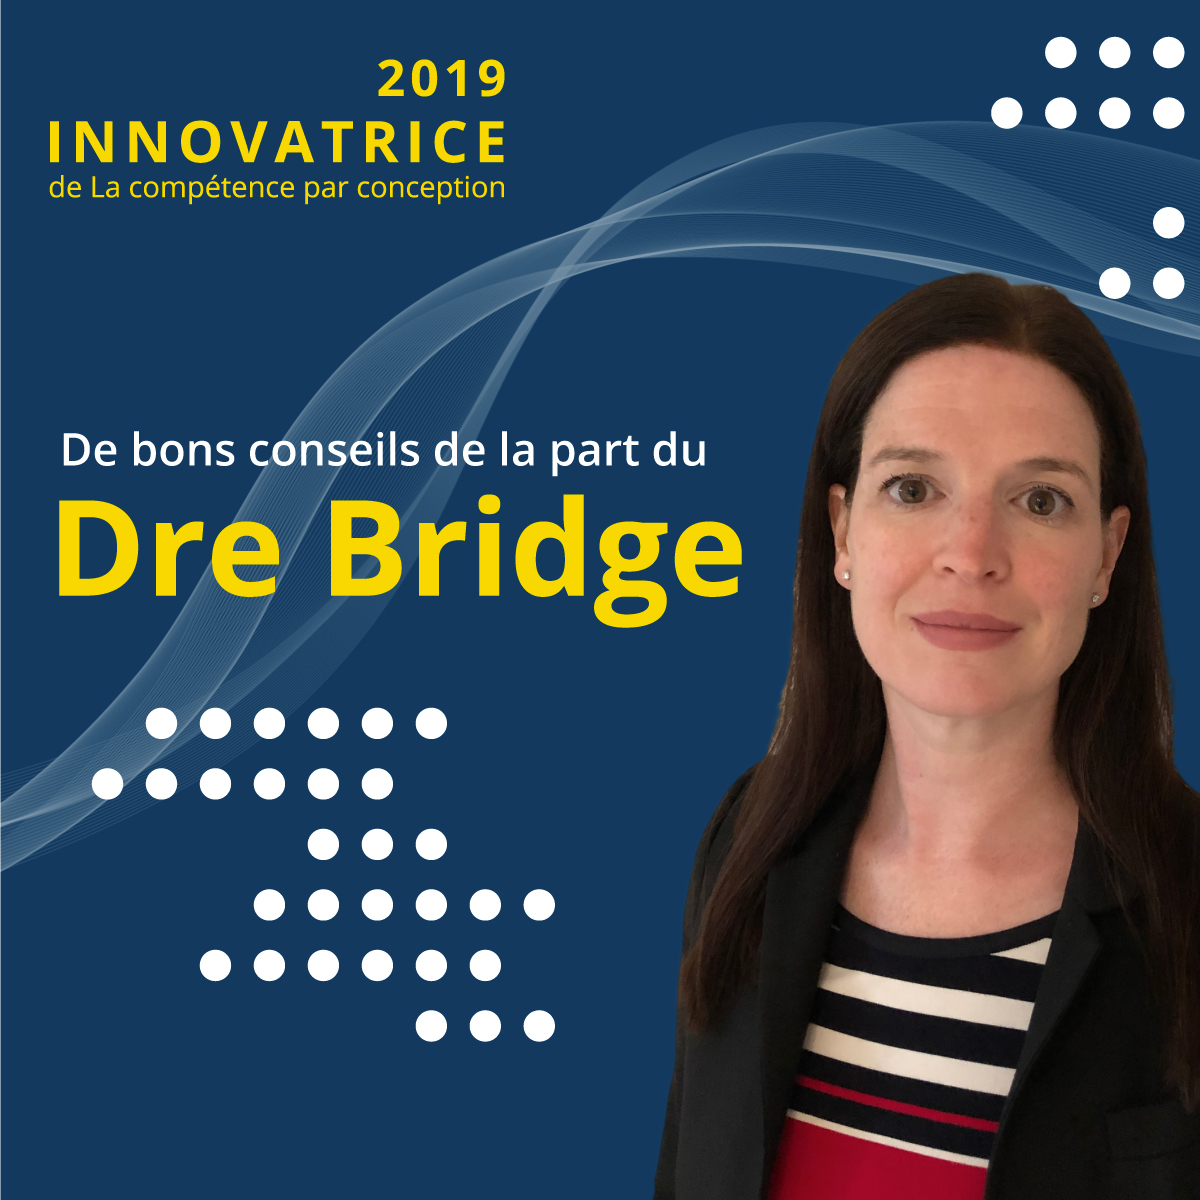 2019 Competence by design innovator